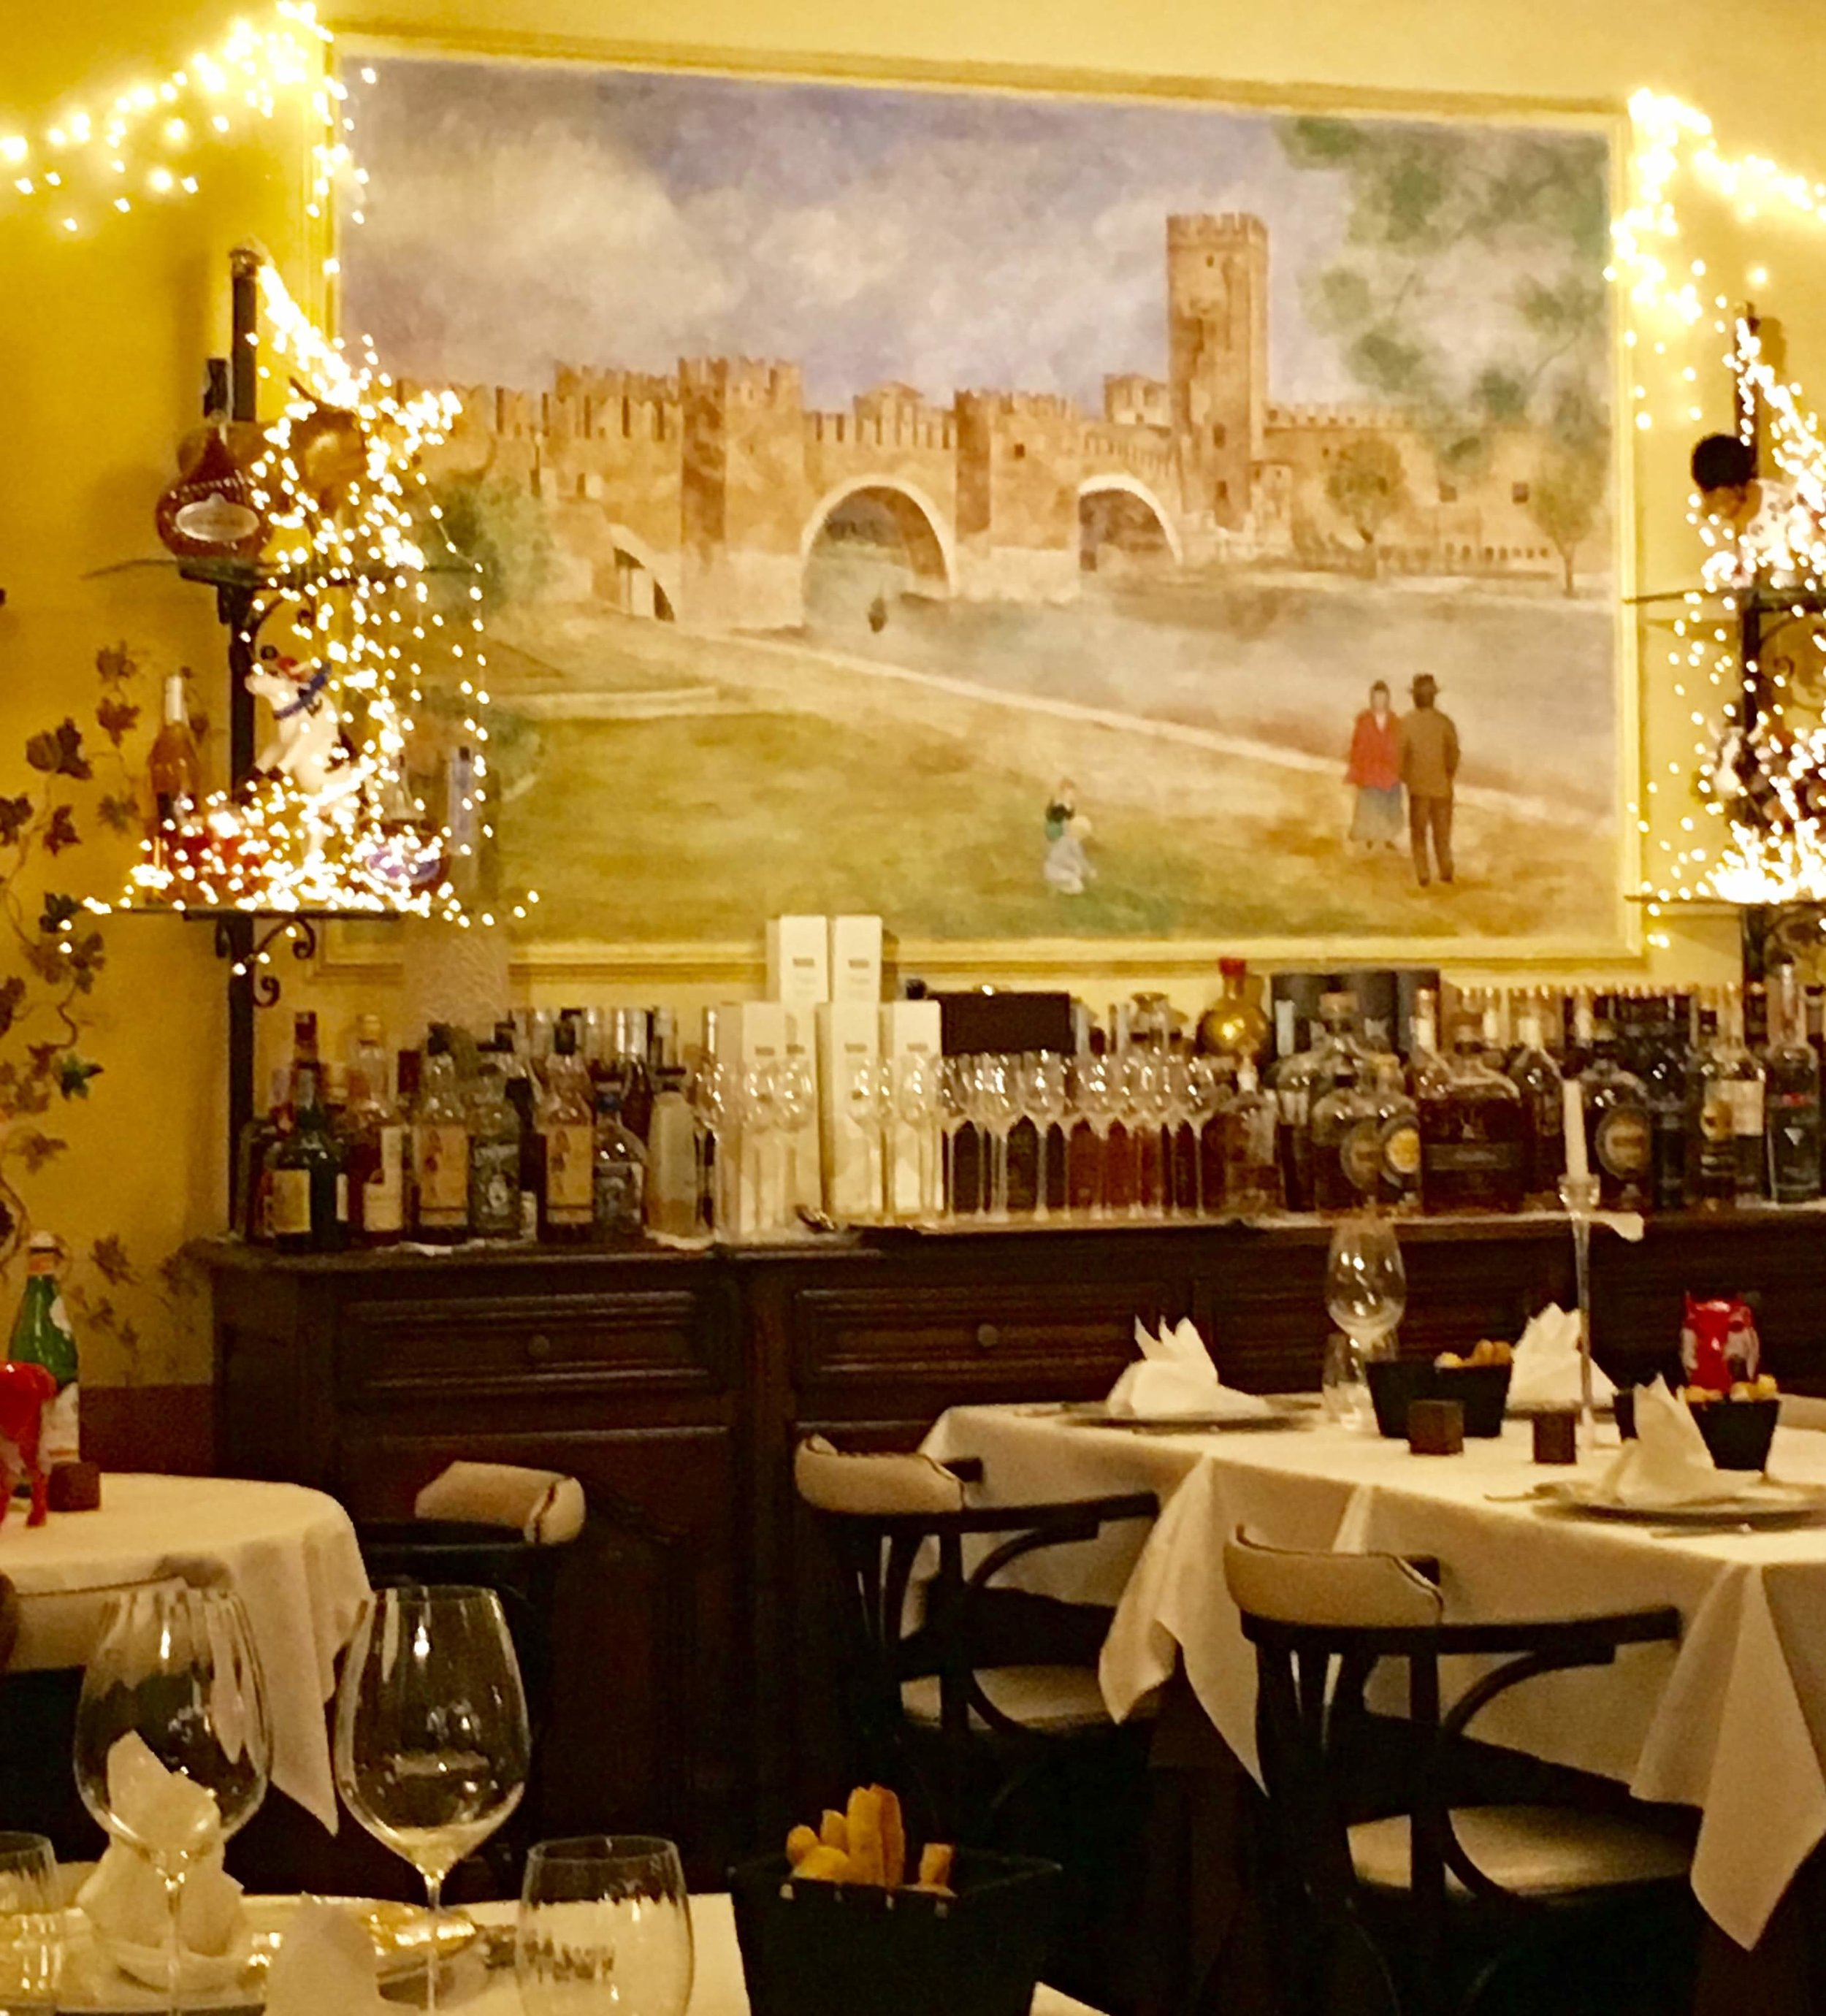 Ristorante Torcolo,  We'll be looking for the little hole in the wall eateries from hereon in